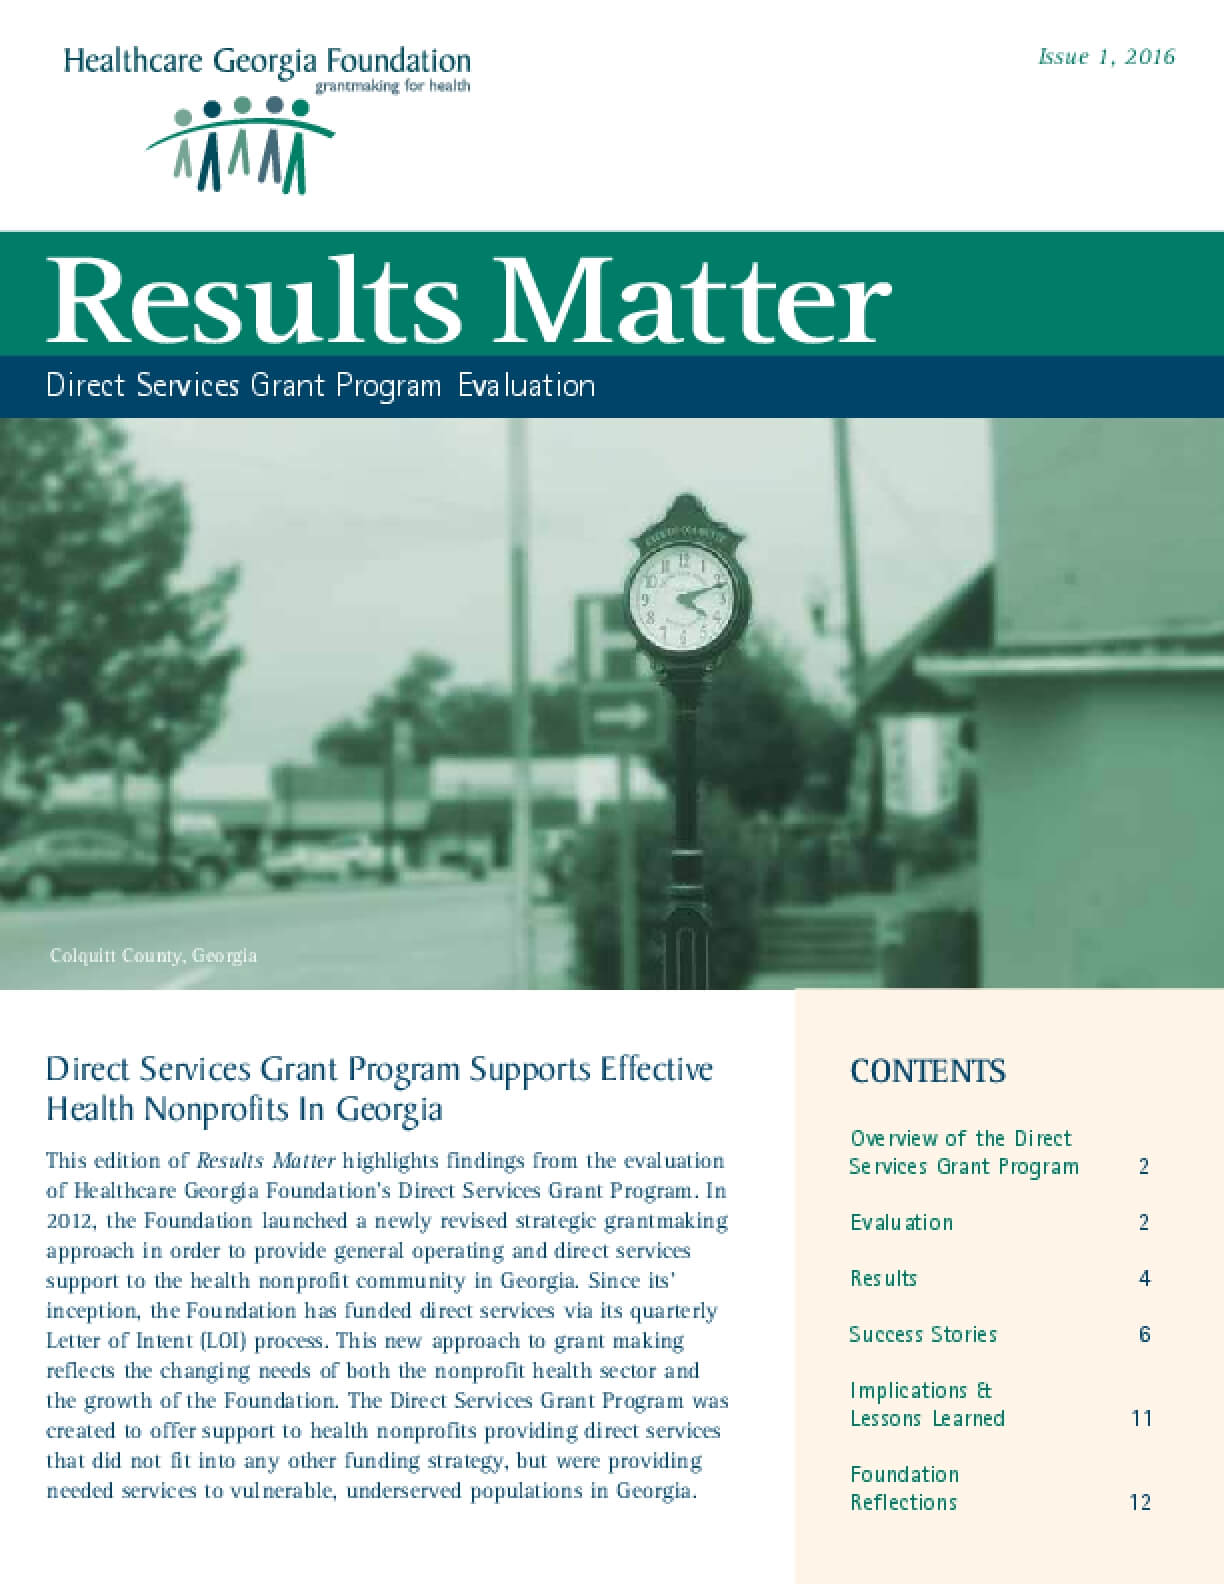 Results Matter: Direct Services Grants Program Evaluation